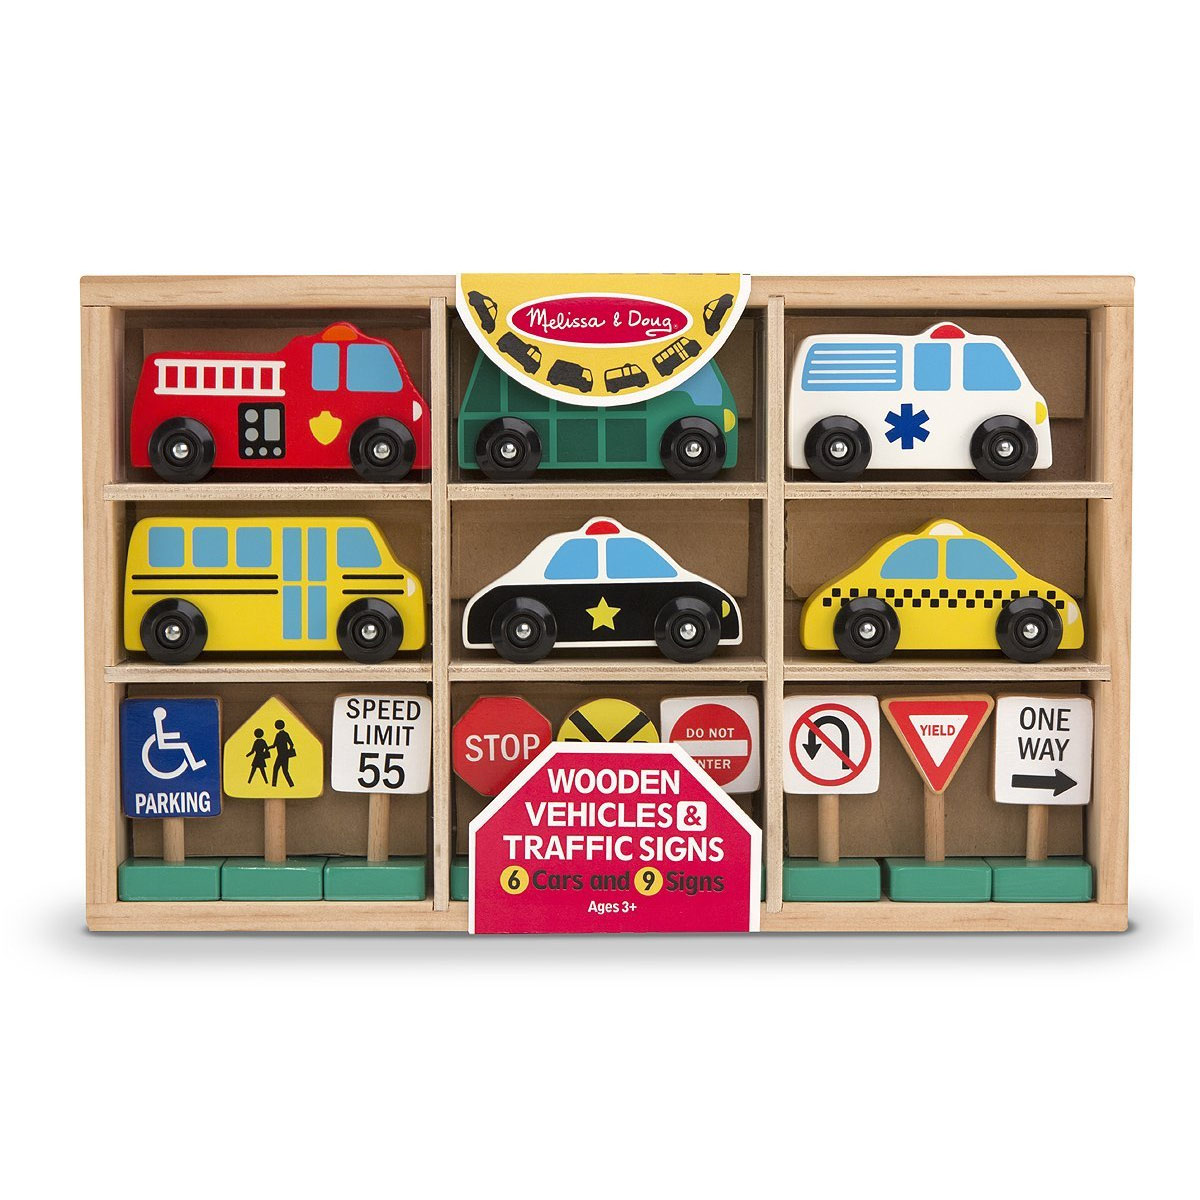 Melissa & Doug Wooden Vehicles and Traffic Signs For Train Table ...